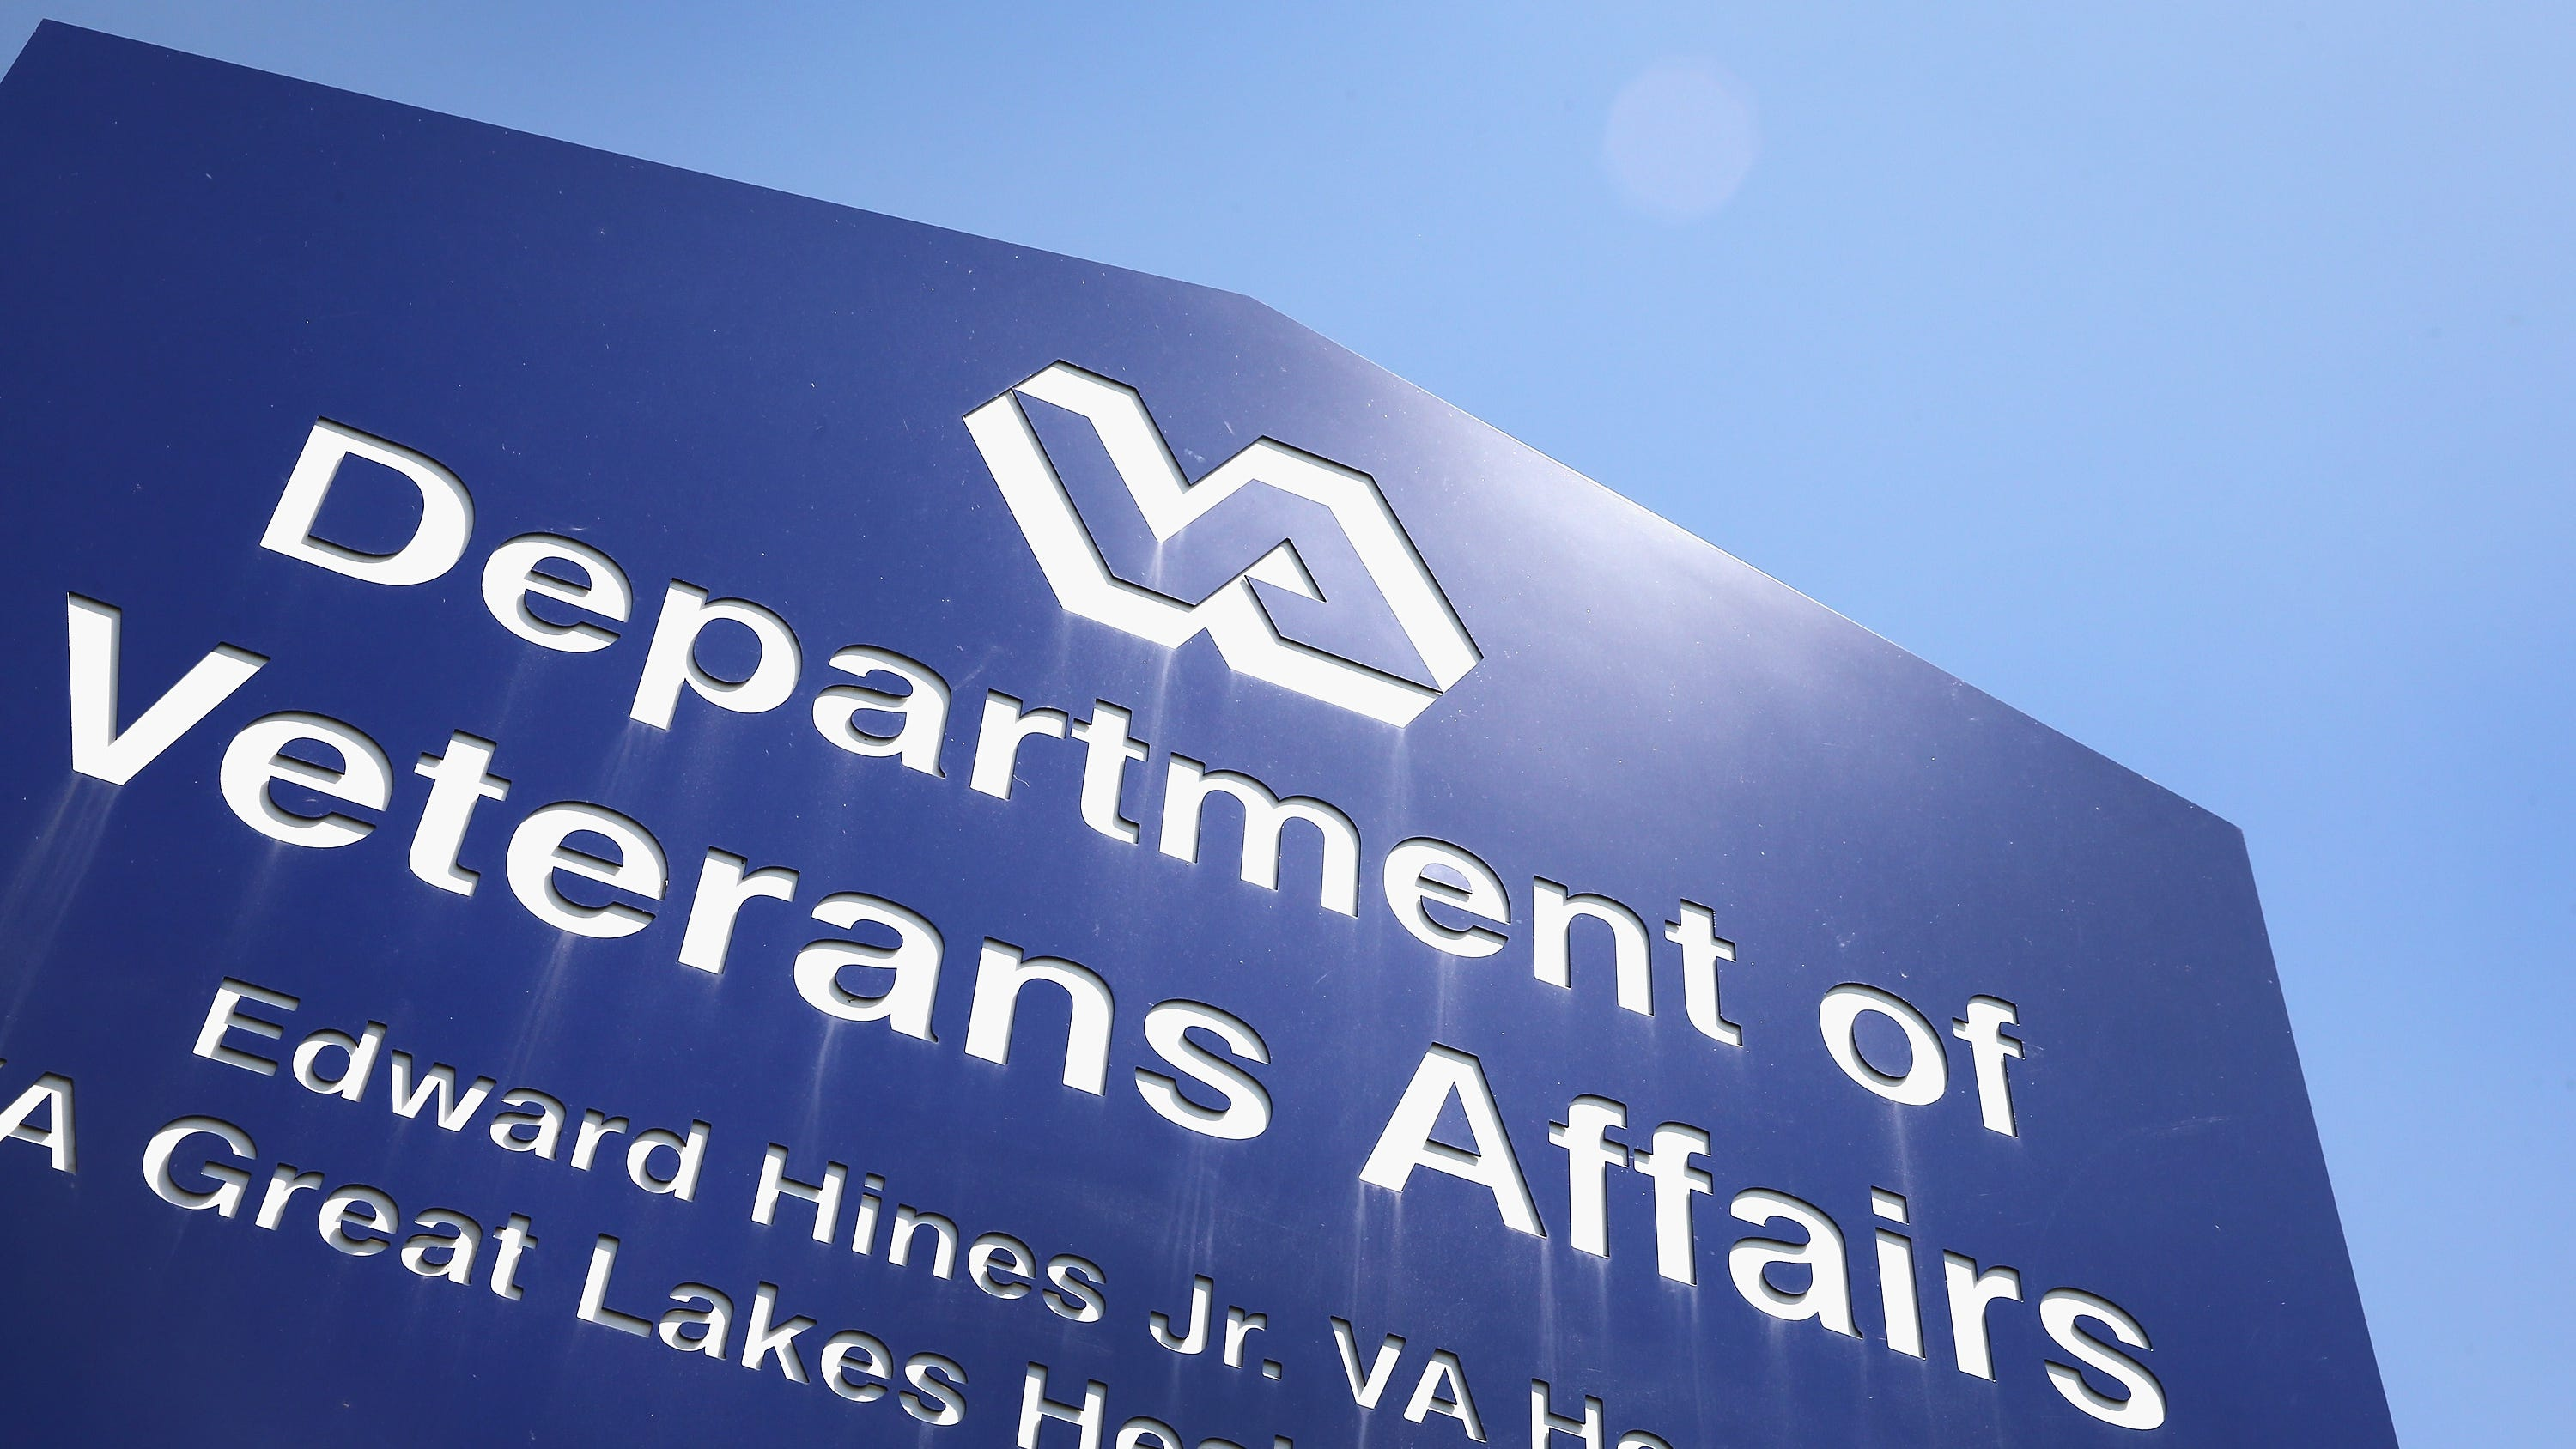 VA wants to hear from vets with discharges considered 'dishonorable'